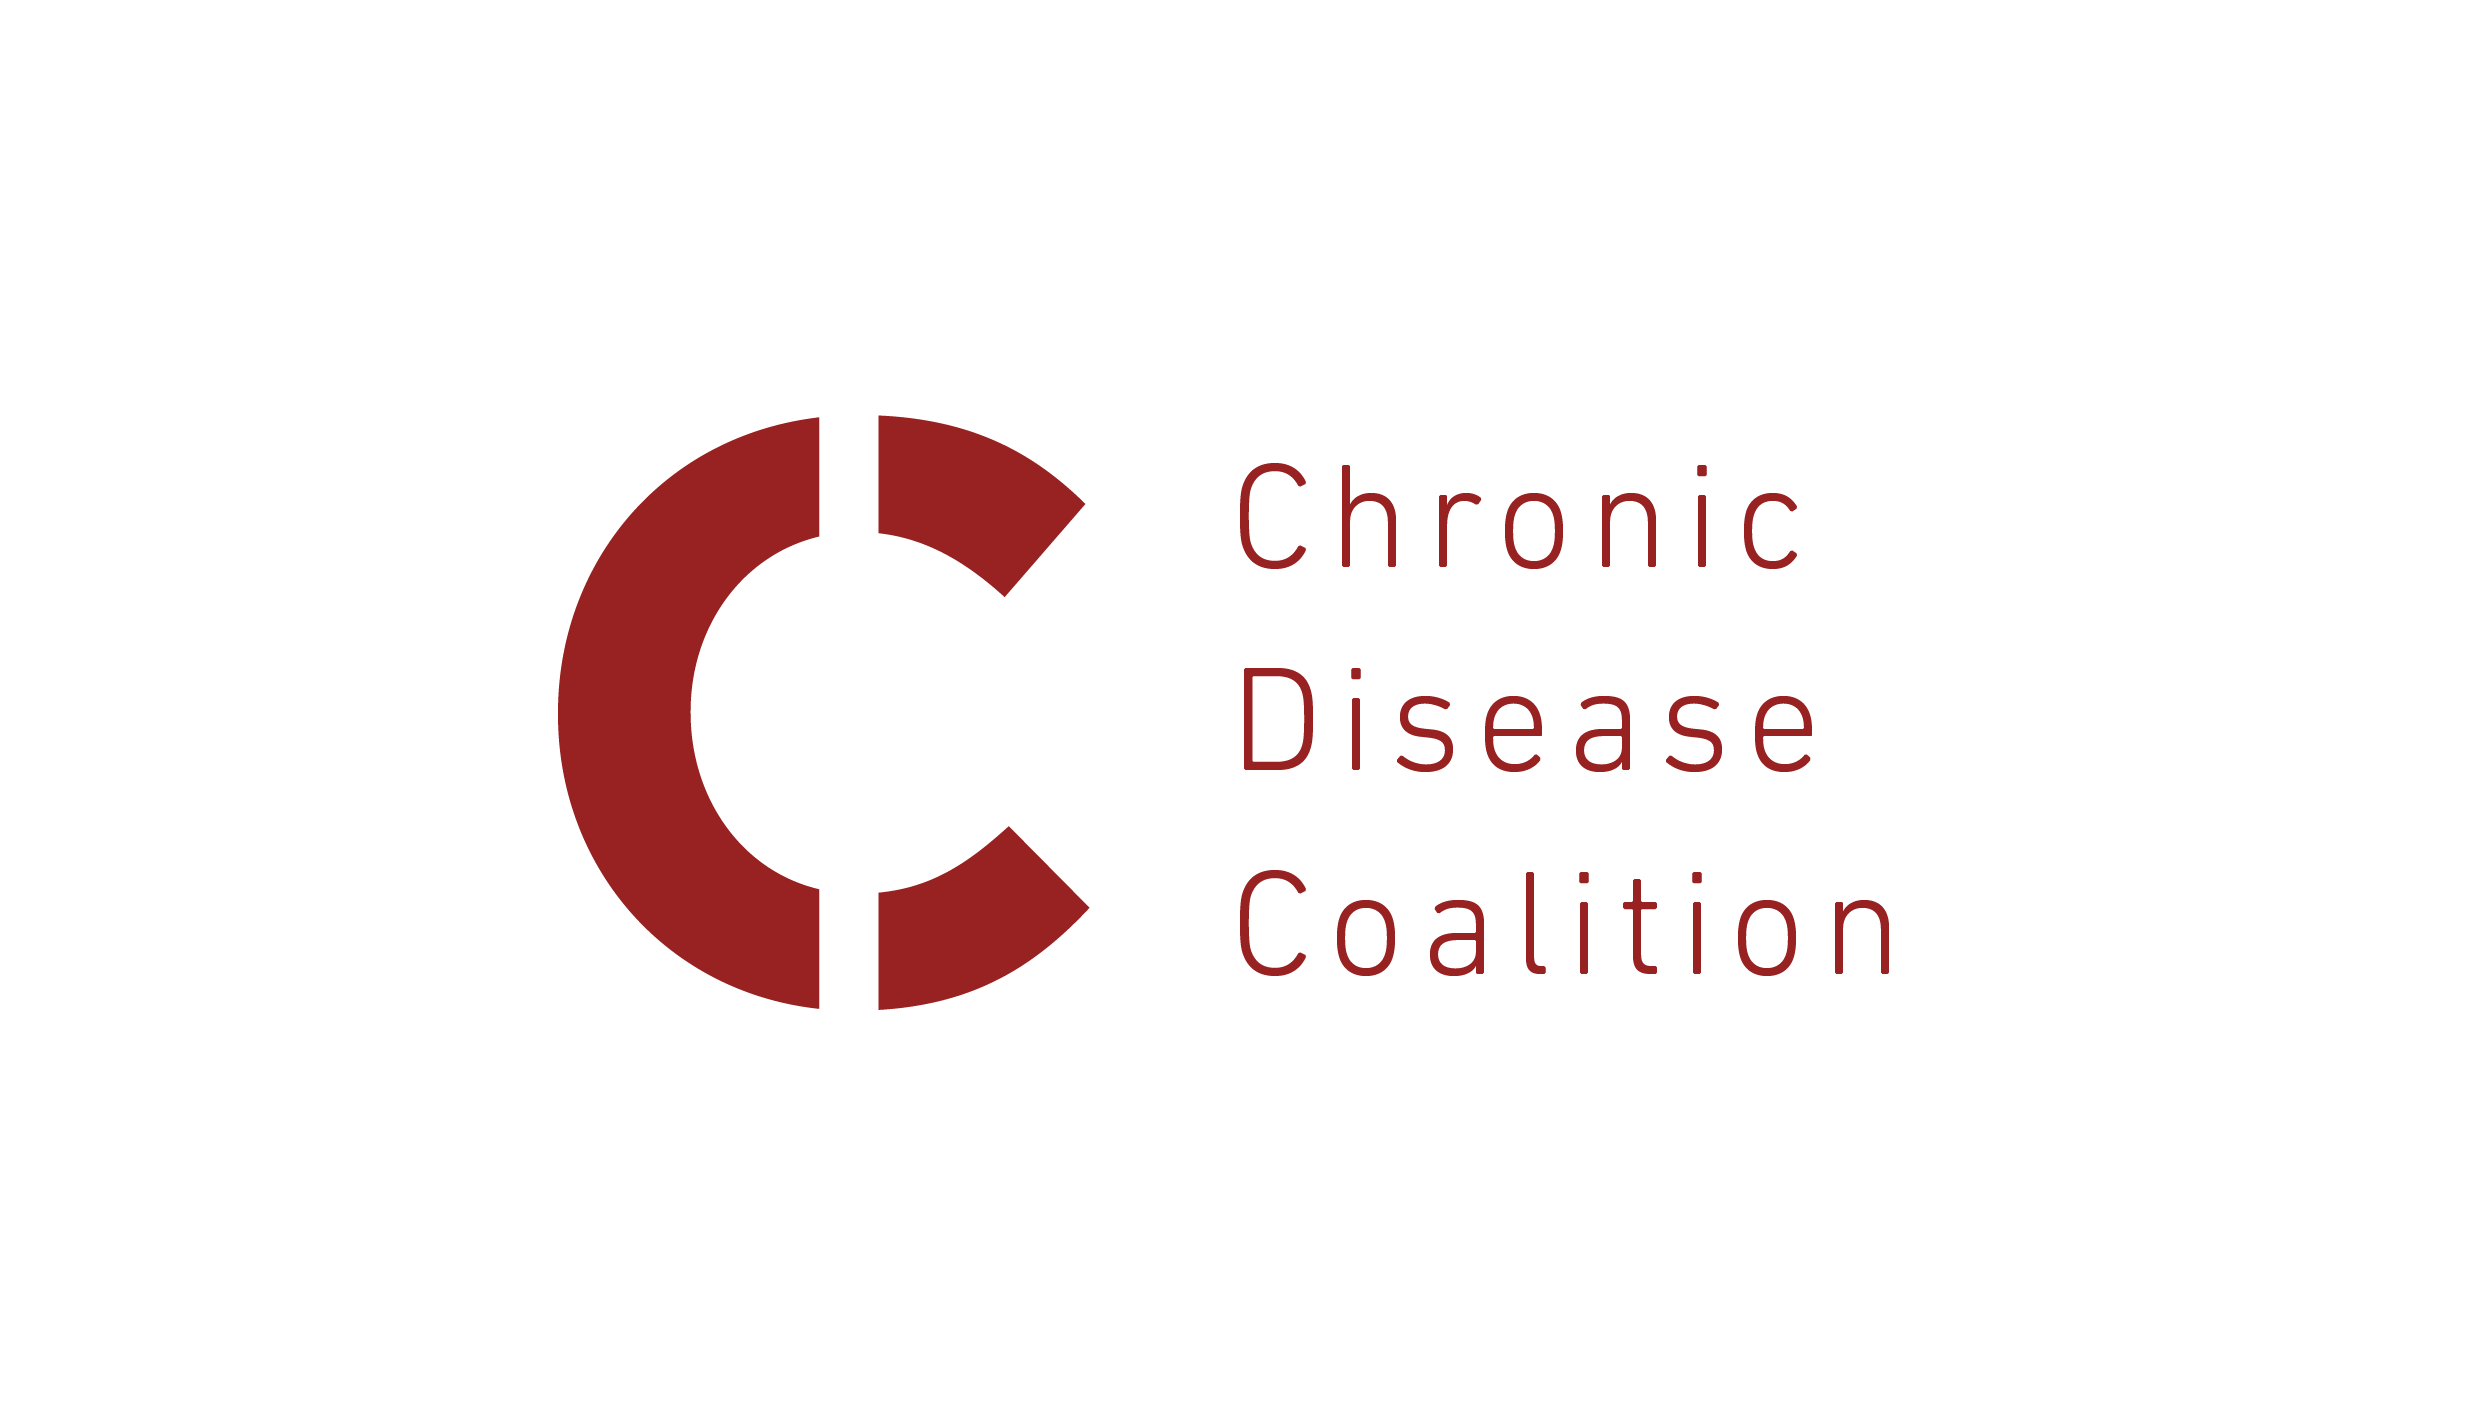 CDC_H_Red.png